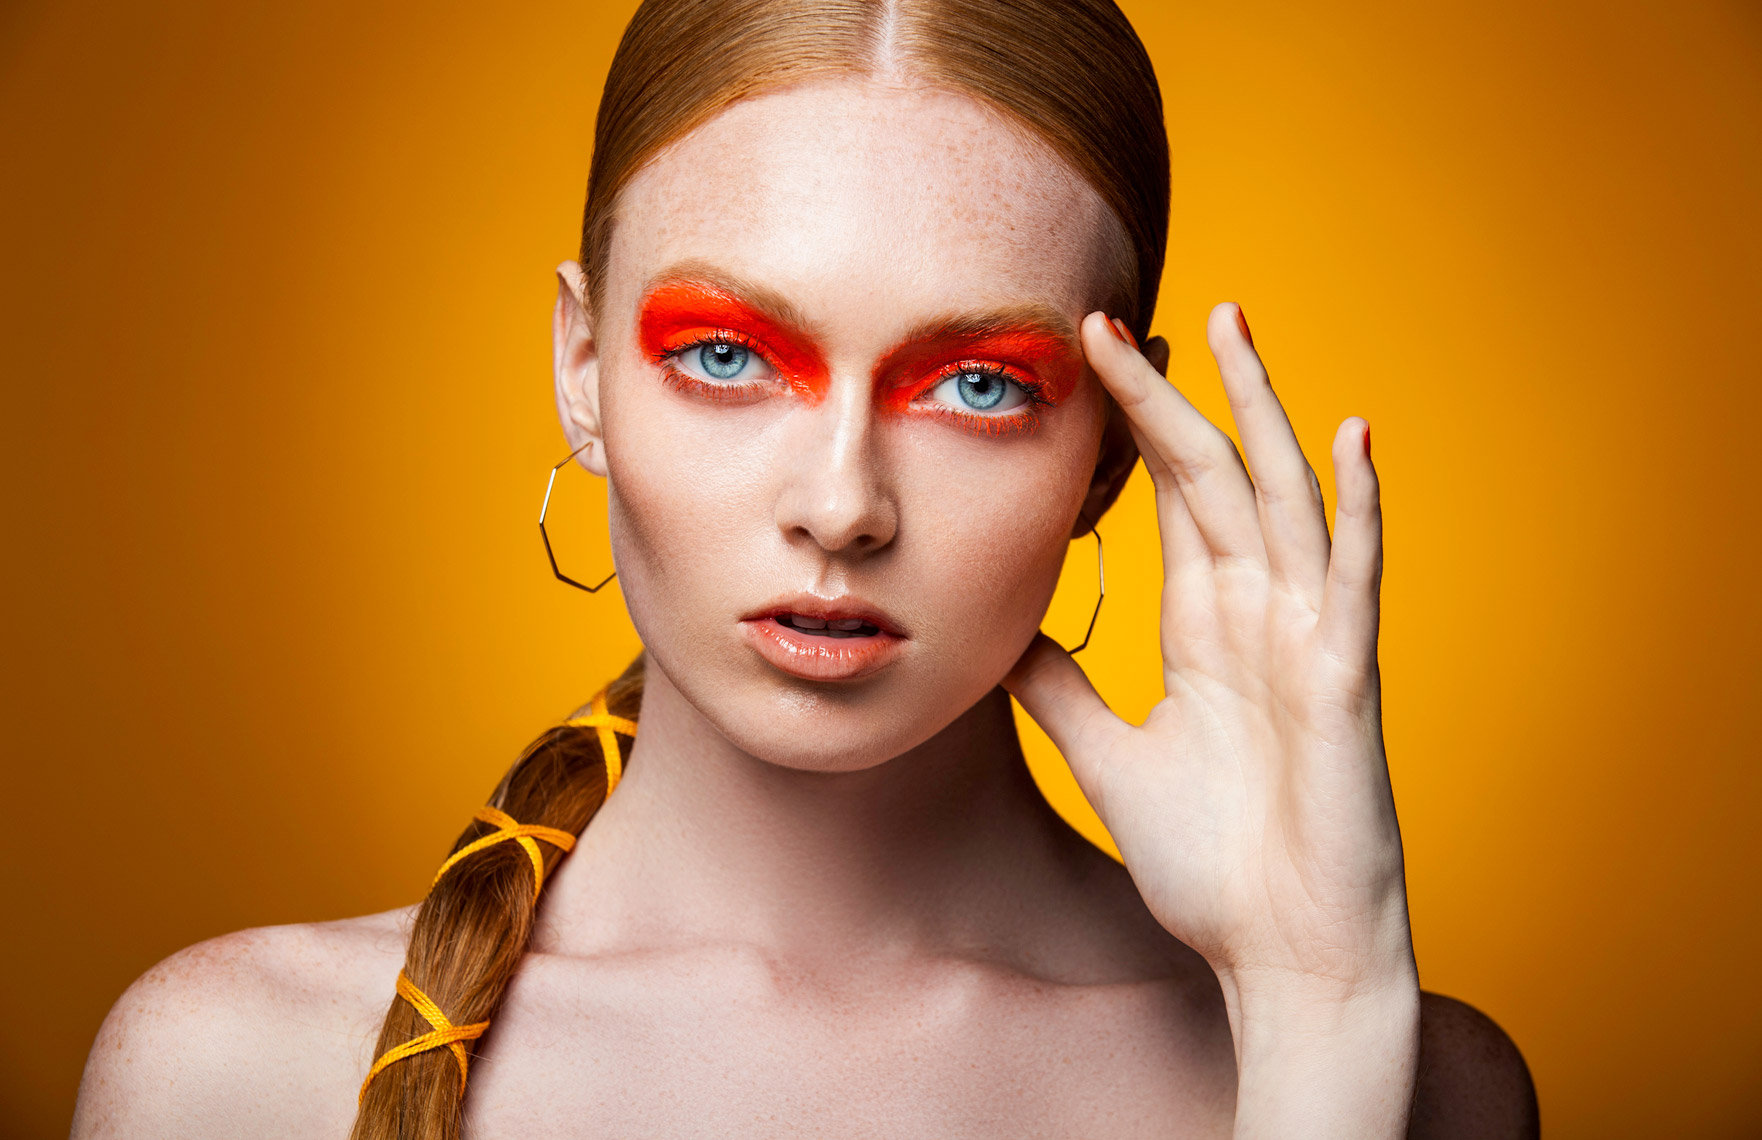 Celosia-Editorial-04, Lucys Magazine, Editorial, Beauty, Fashion, Denya Altevers, Kate Blake, Ian Jacob, Ian Jacob Photography, Studio,  Next Model Management